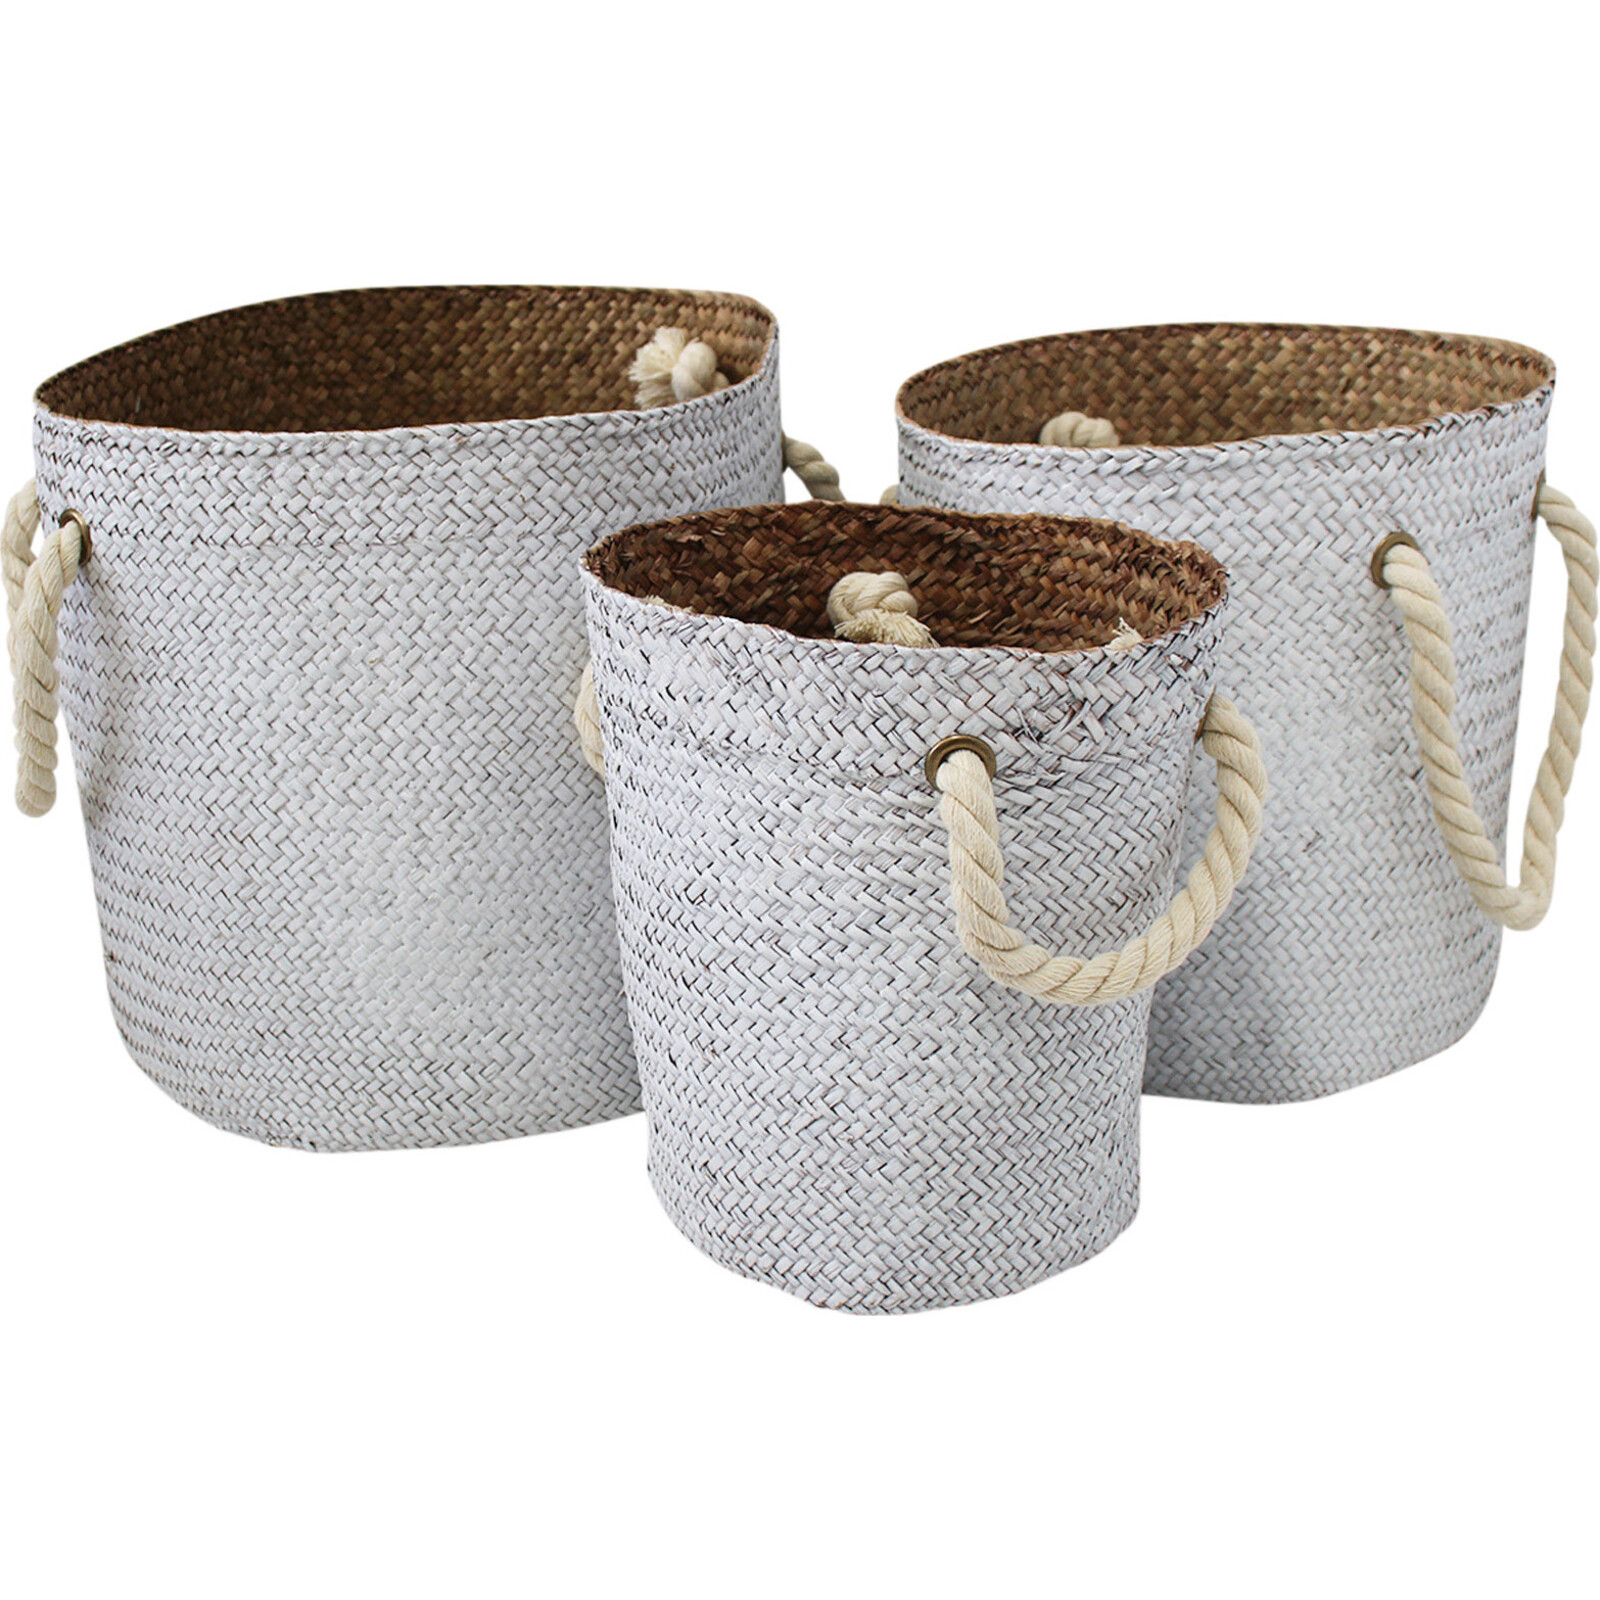 Woven Tubs S/3 Rope Handle White/Nat